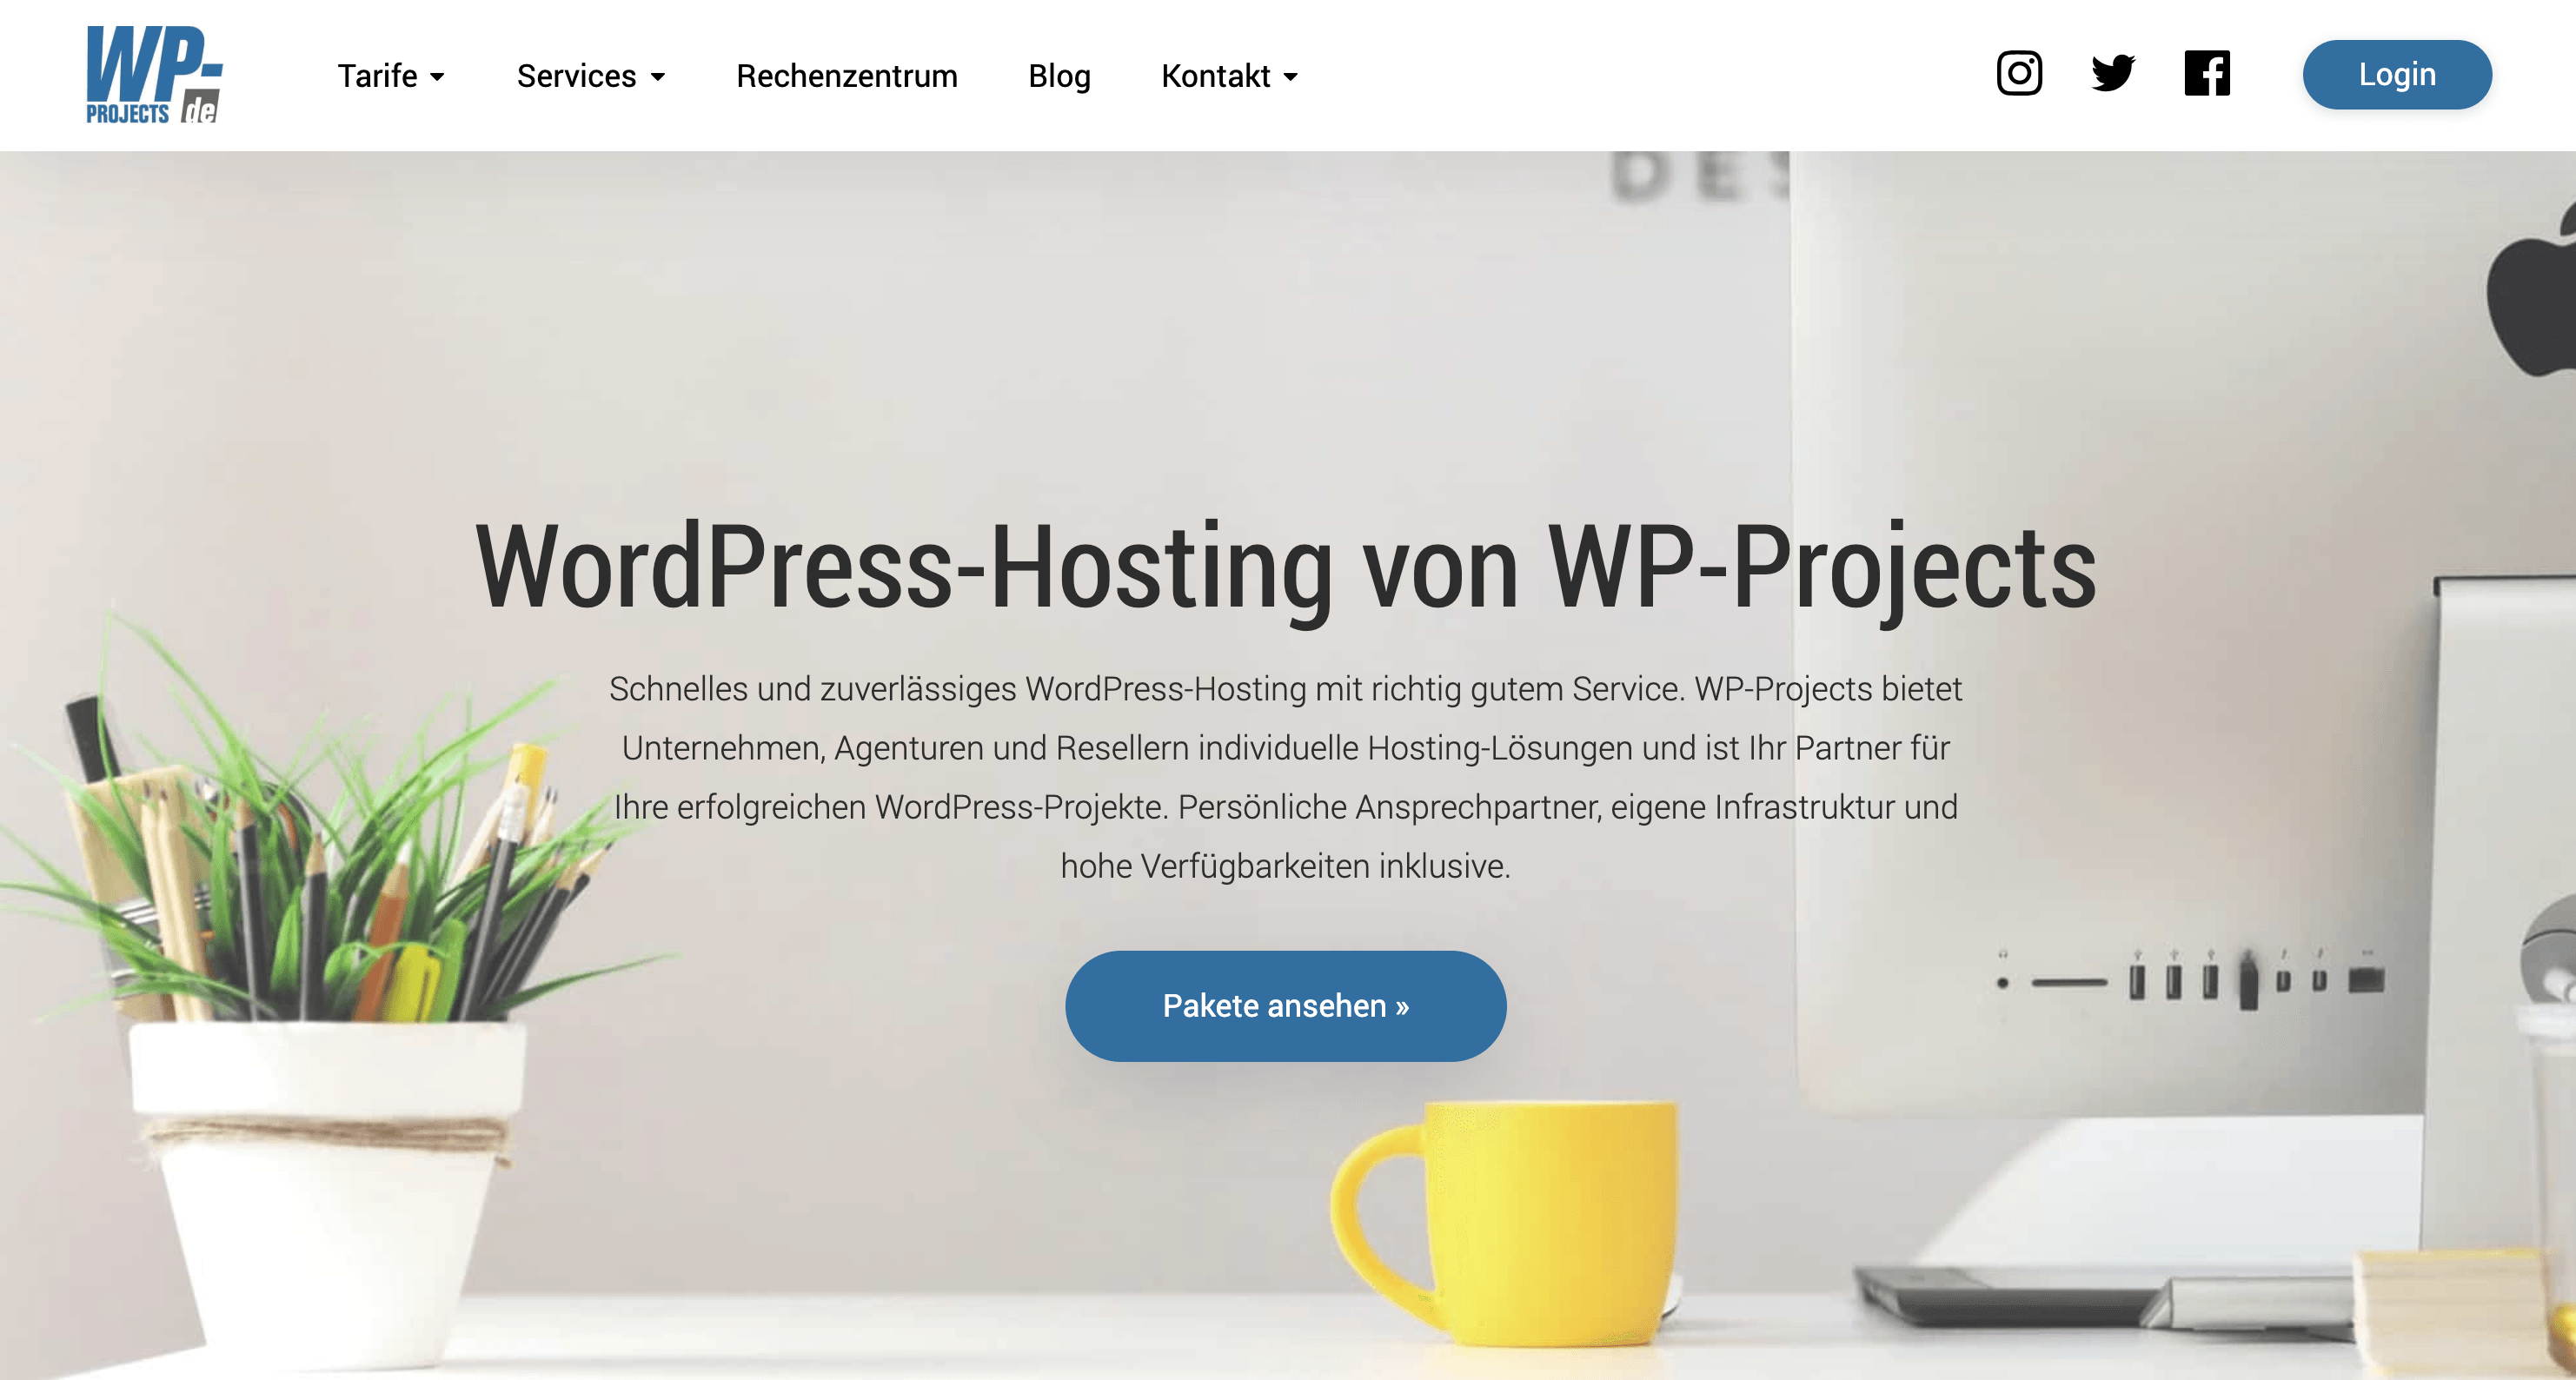 WP-Projects WordPress-Hosting